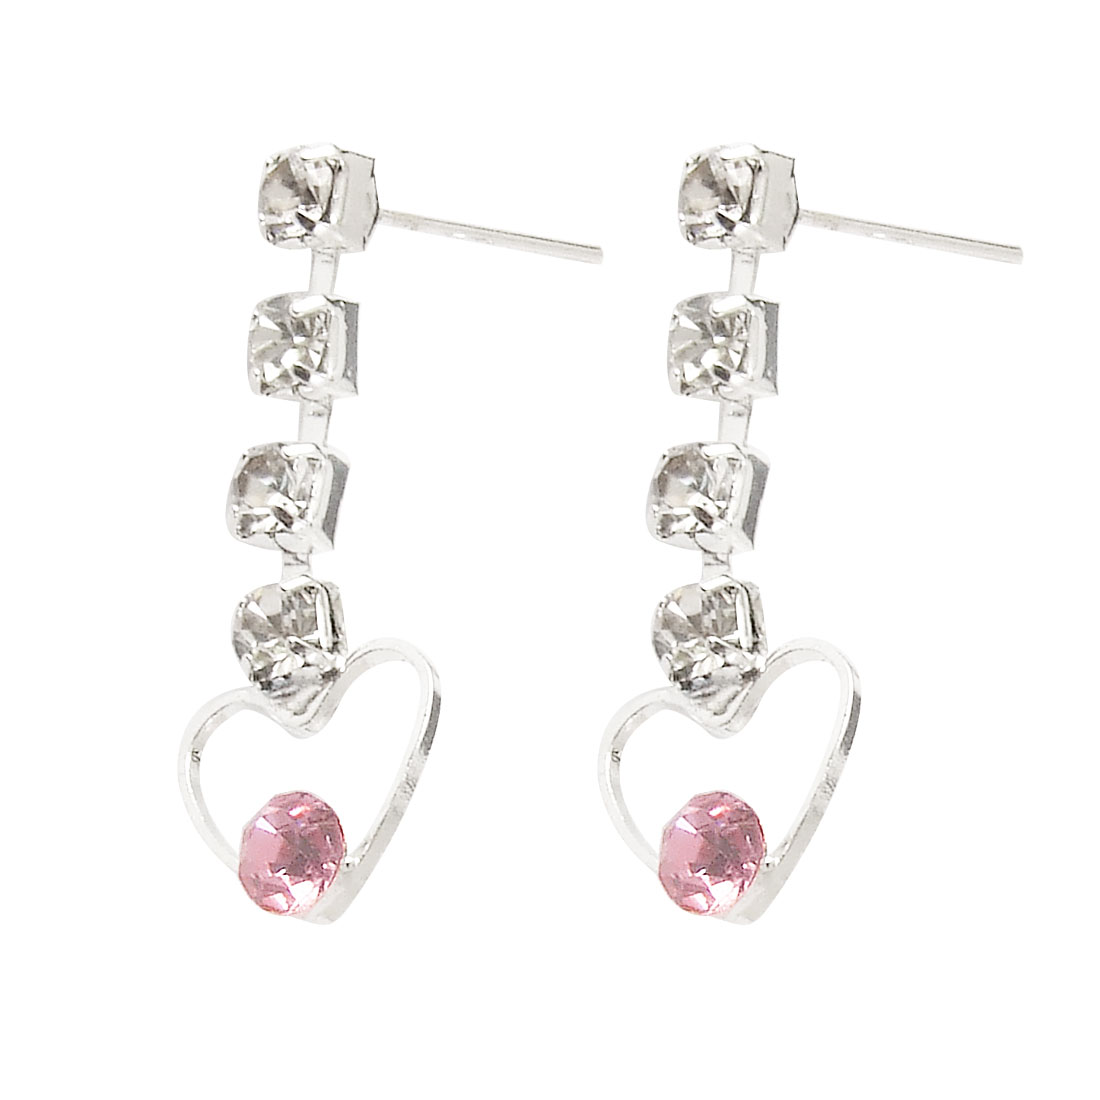 Lady Silver Tone pink Rhinestone Inlaid Heart Drop Stud Earrings